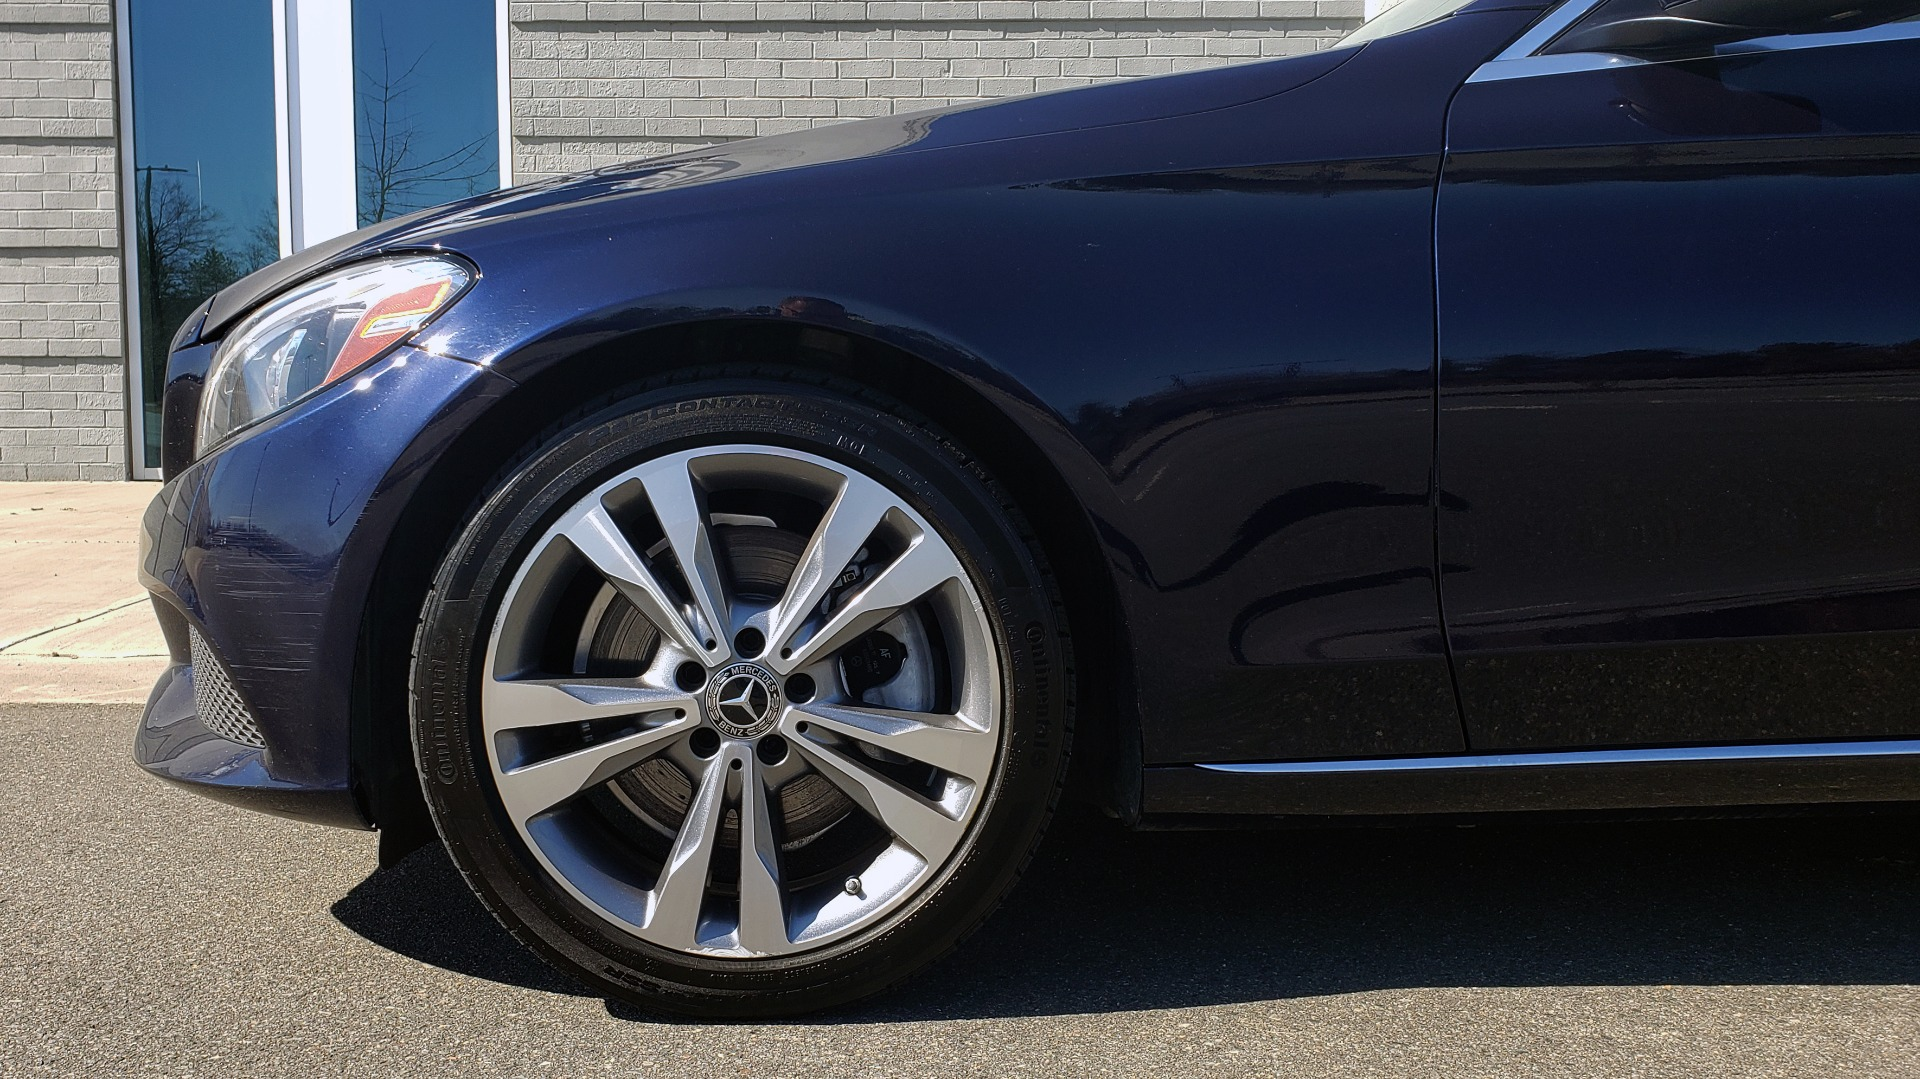 Used 2018 Mercedes-Benz C-CLASS C 300 PREMIUM / SUNROOF / BURMESTER / BSM / REARVIEW for sale $23,995 at Formula Imports in Charlotte NC 28227 70